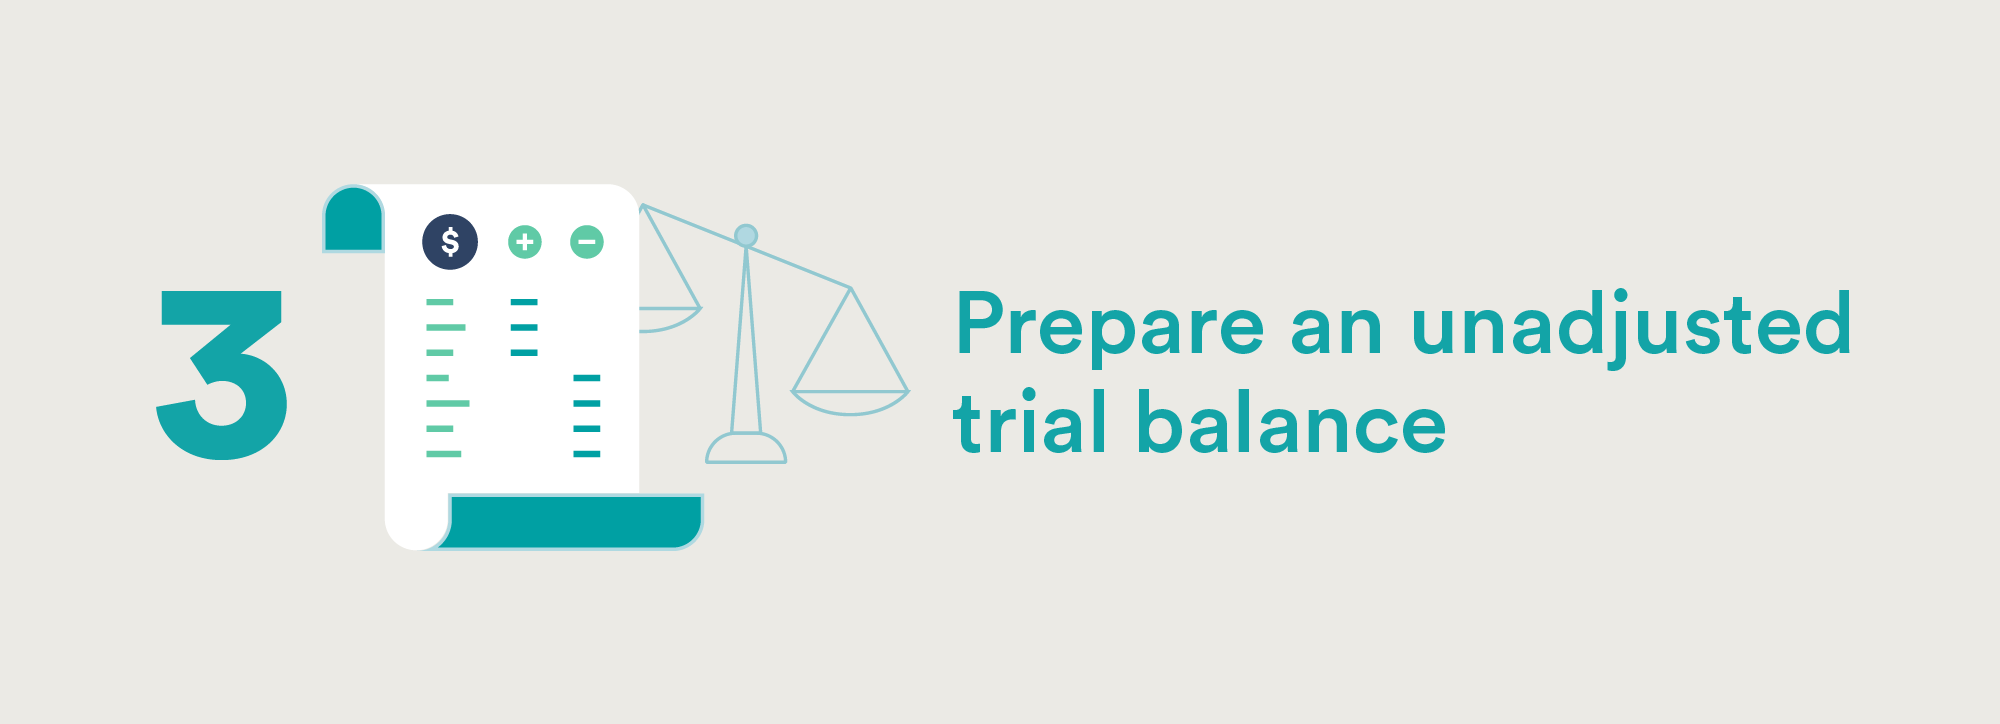 Accounting Cycle Step Three: Prepare an unadjusted trial balance